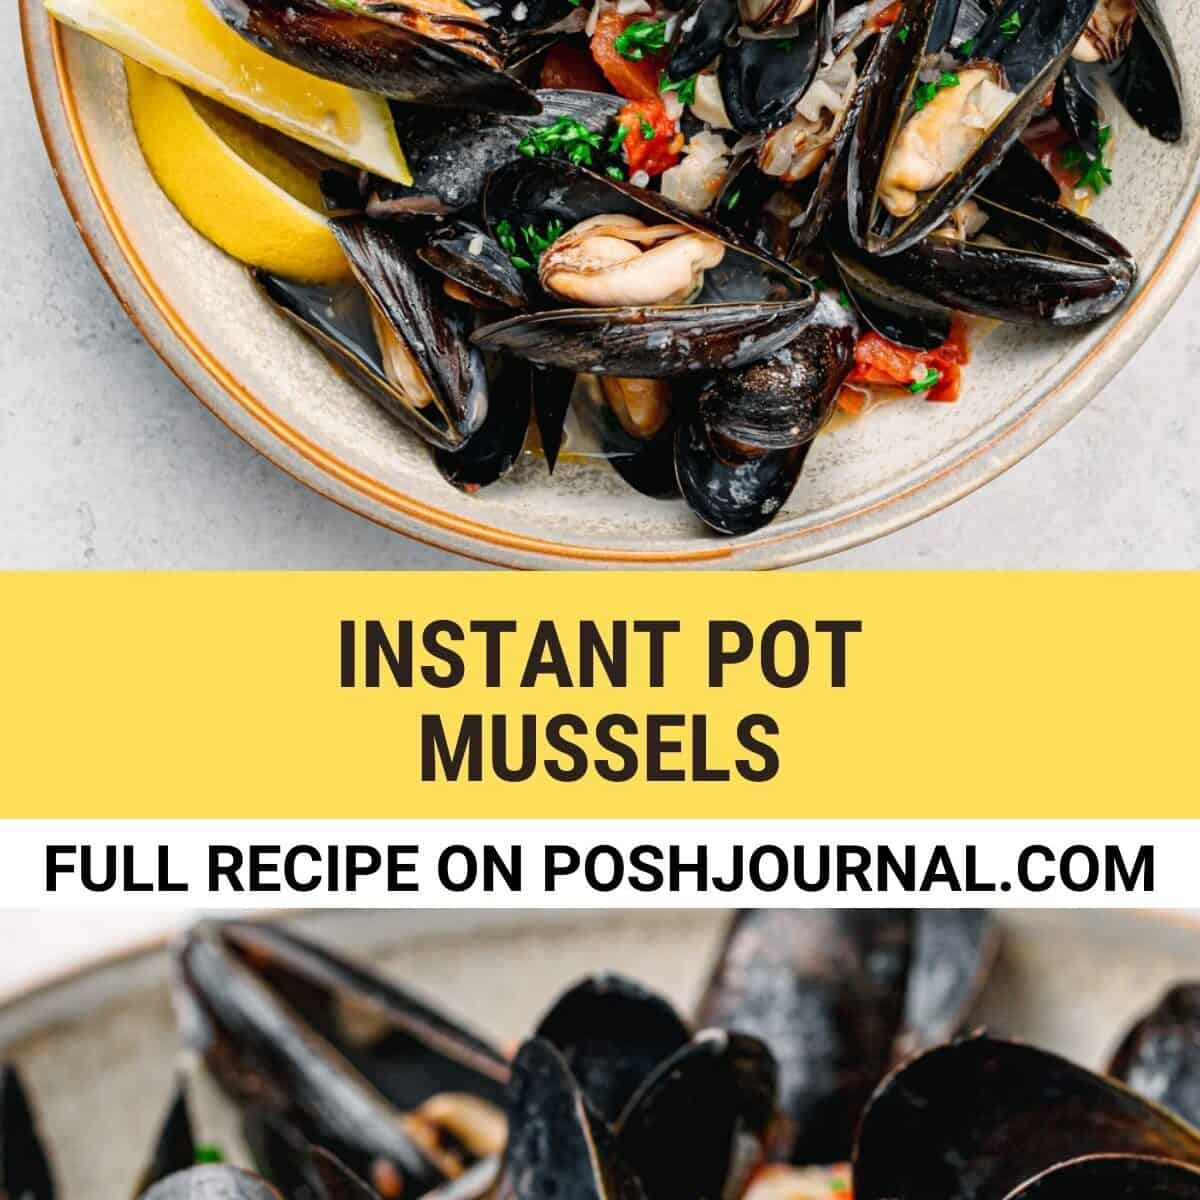 Instant Pot Mussels Recipe.